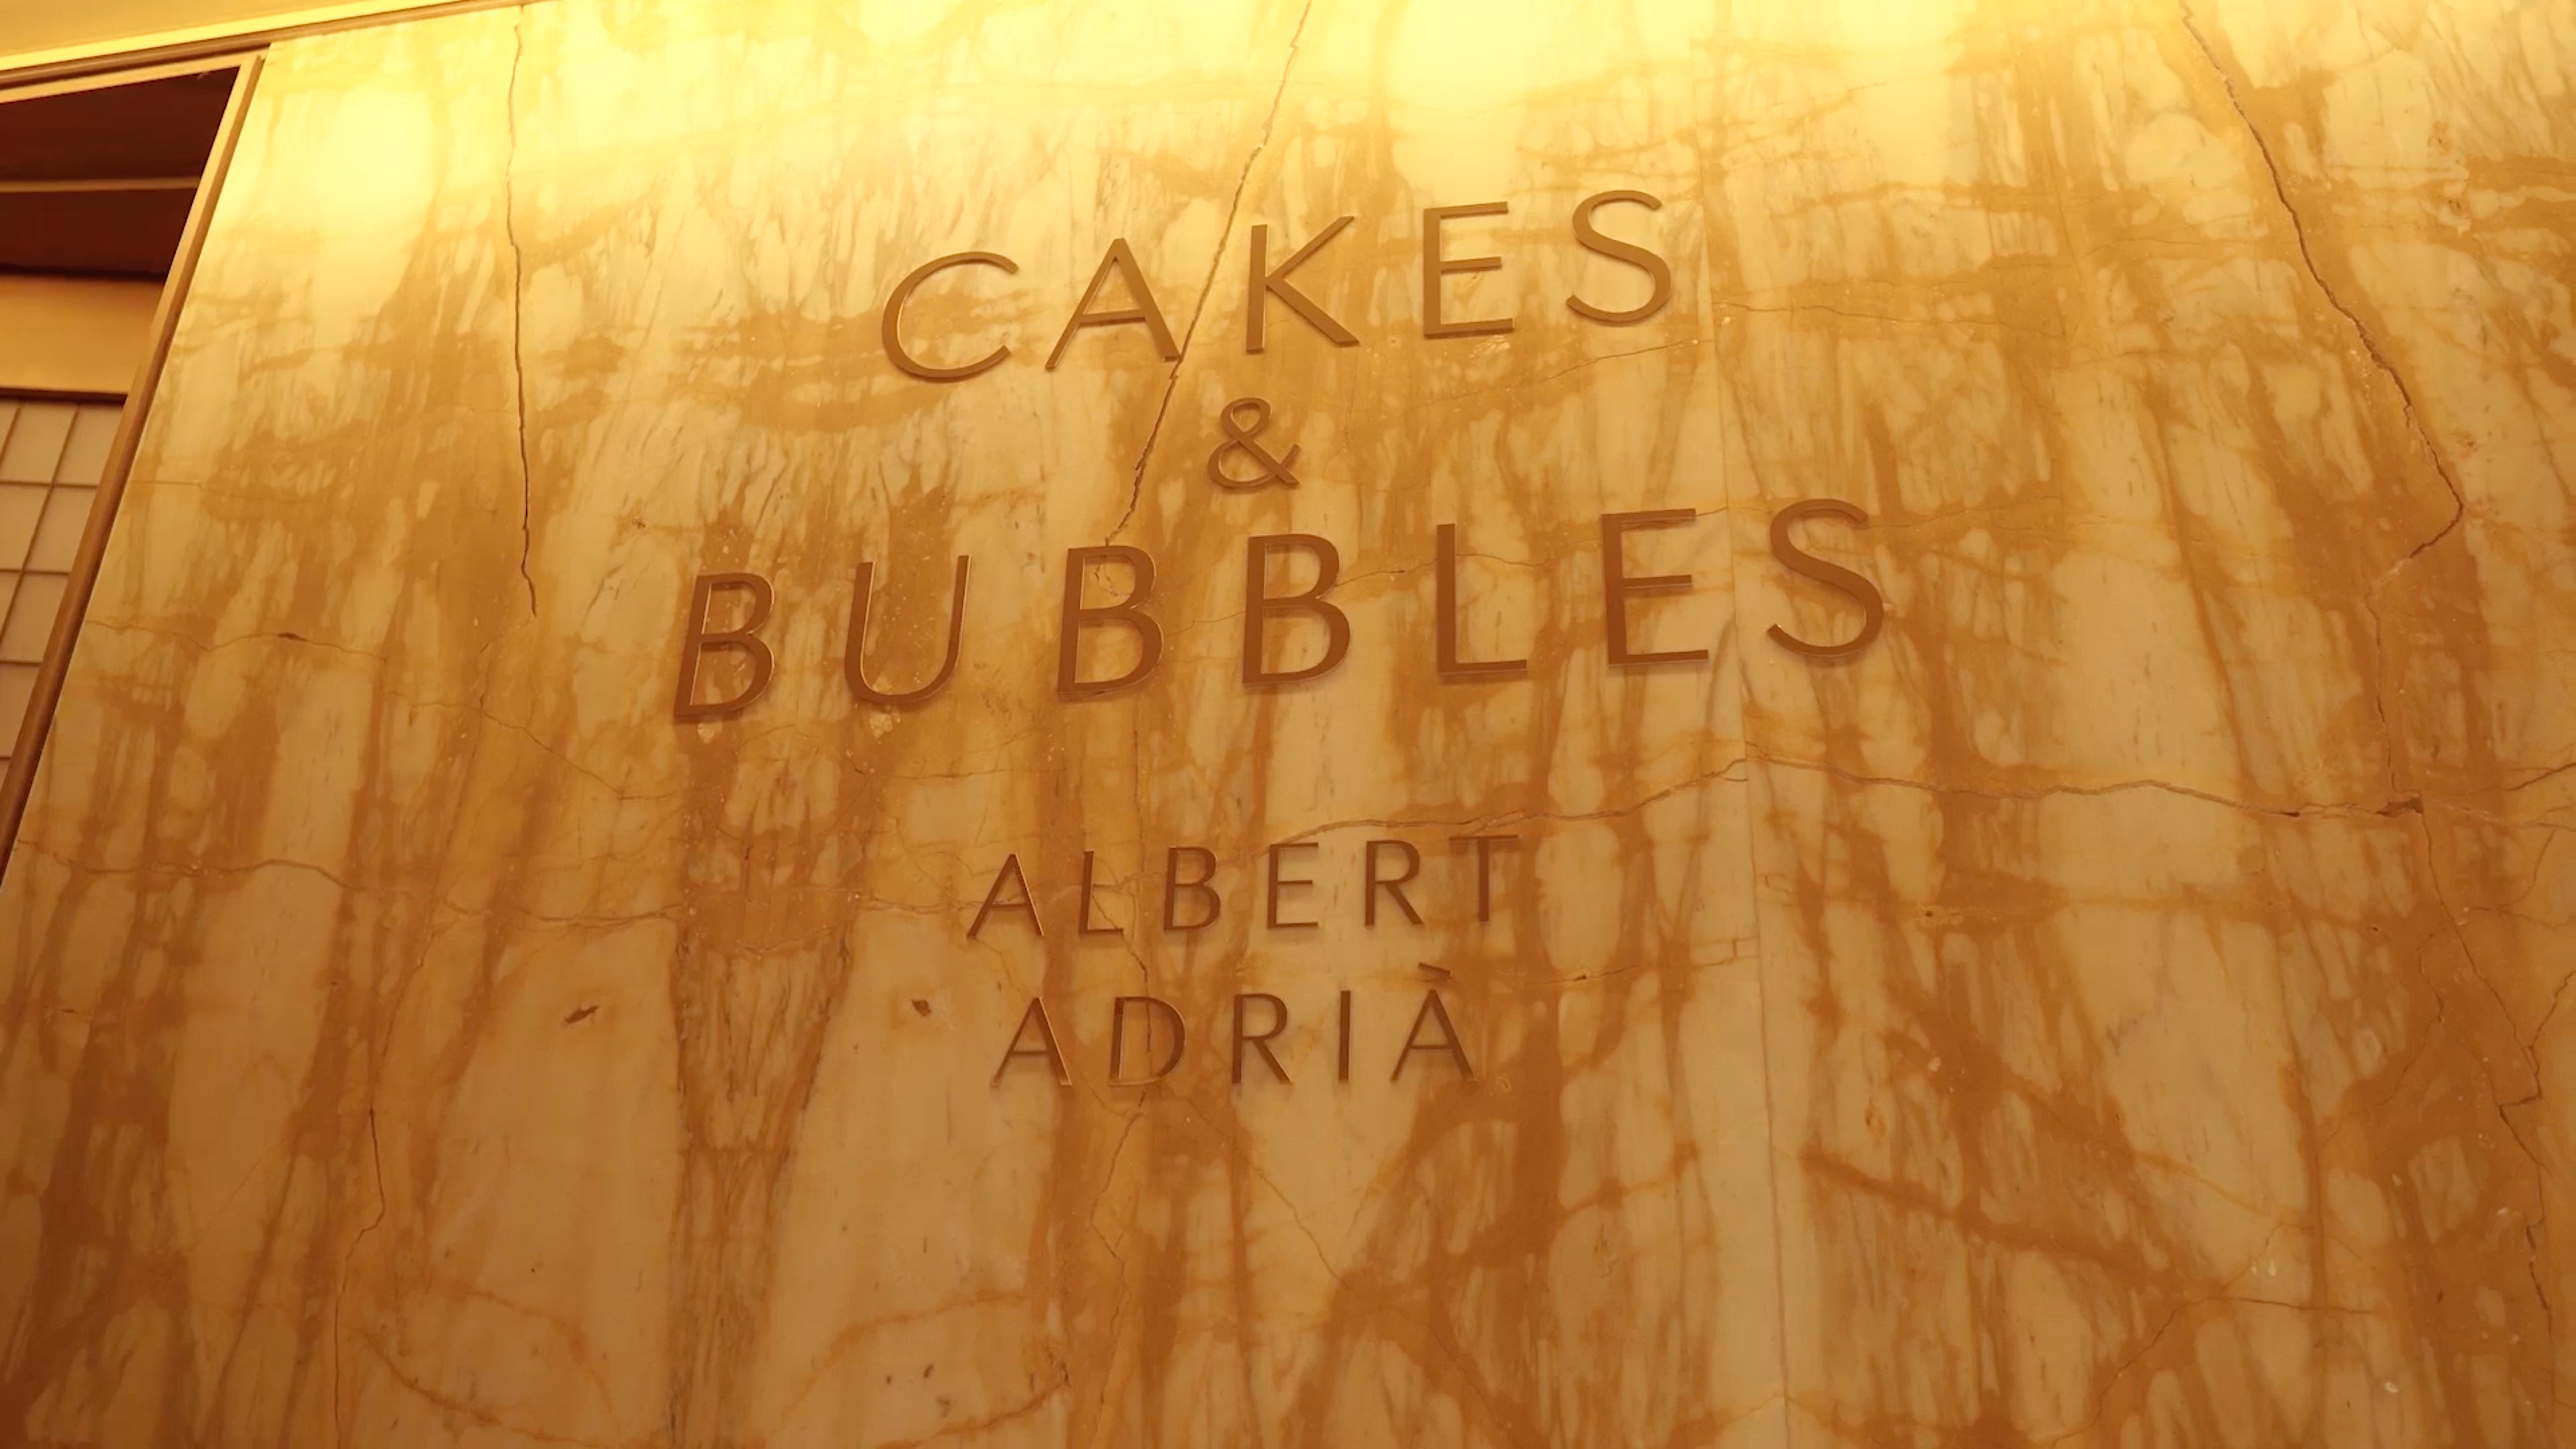 Cakes and Bubbles